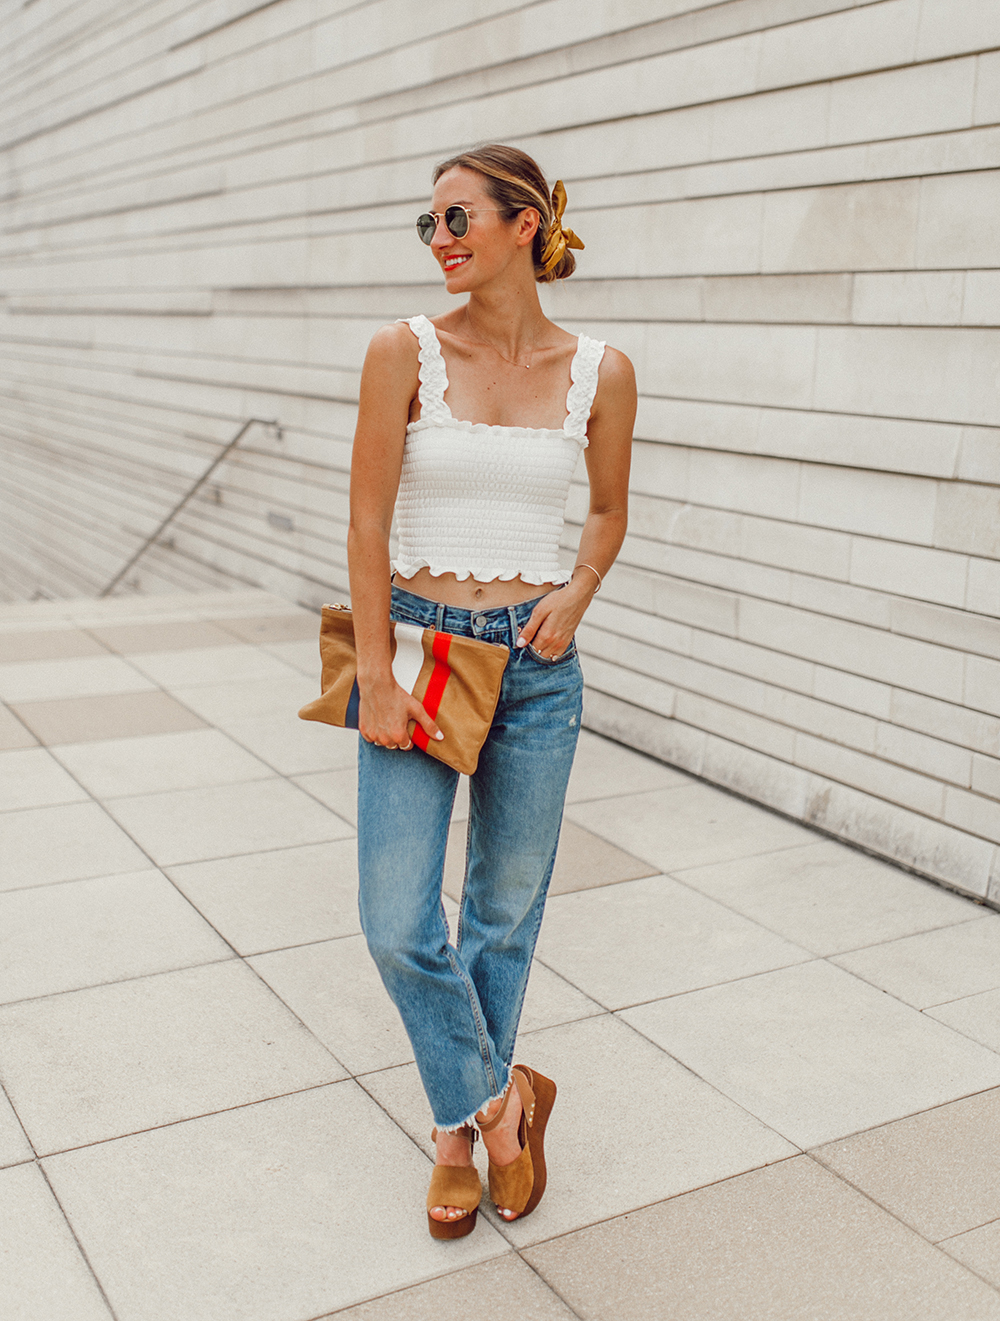 livvyland-blog-olivia-watson-austin-texas-fashion-style-blogger-reformation-tank-top-girlfriend-high-rise-jeans-hair-scarf-summer-outfit-6